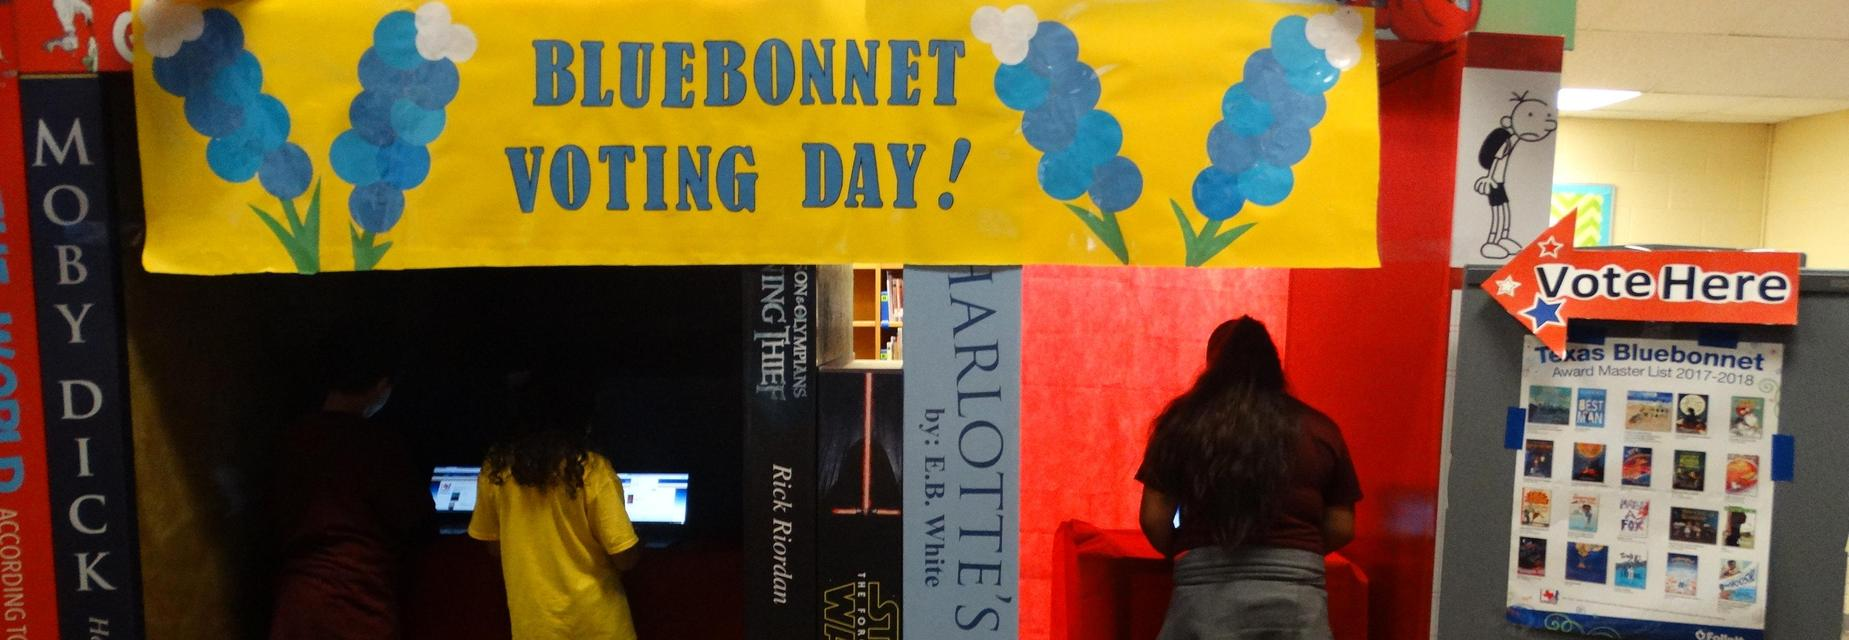 Students vote during Bluebonnet Voting Luncheon